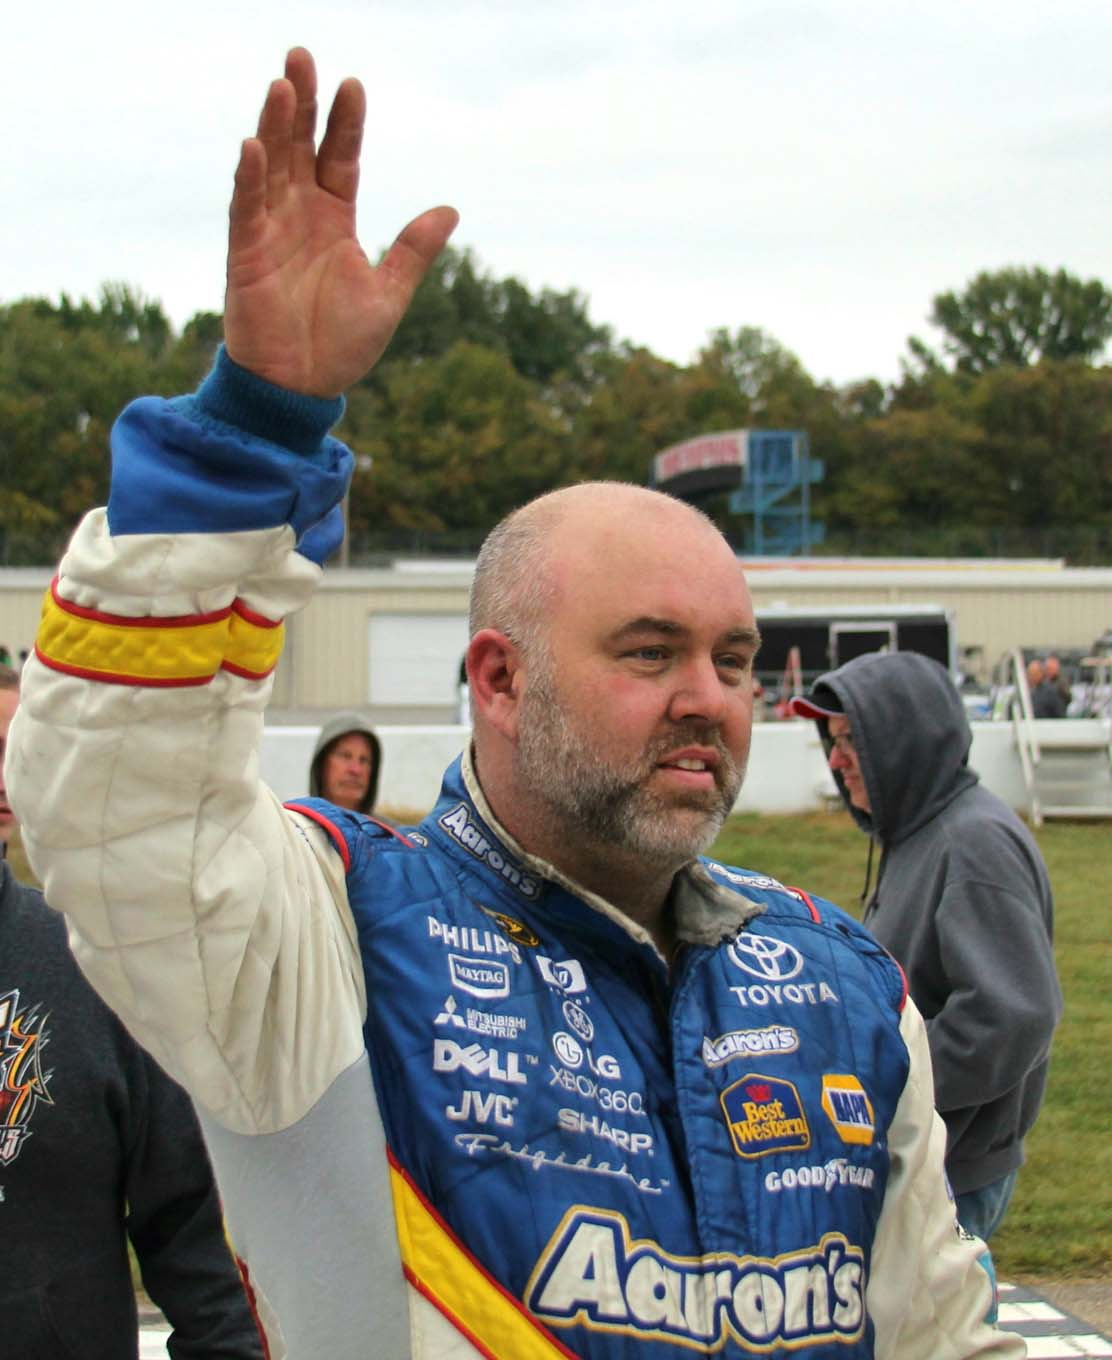 Shawn Smith claimed the first ever G.A.R.S. Championship.